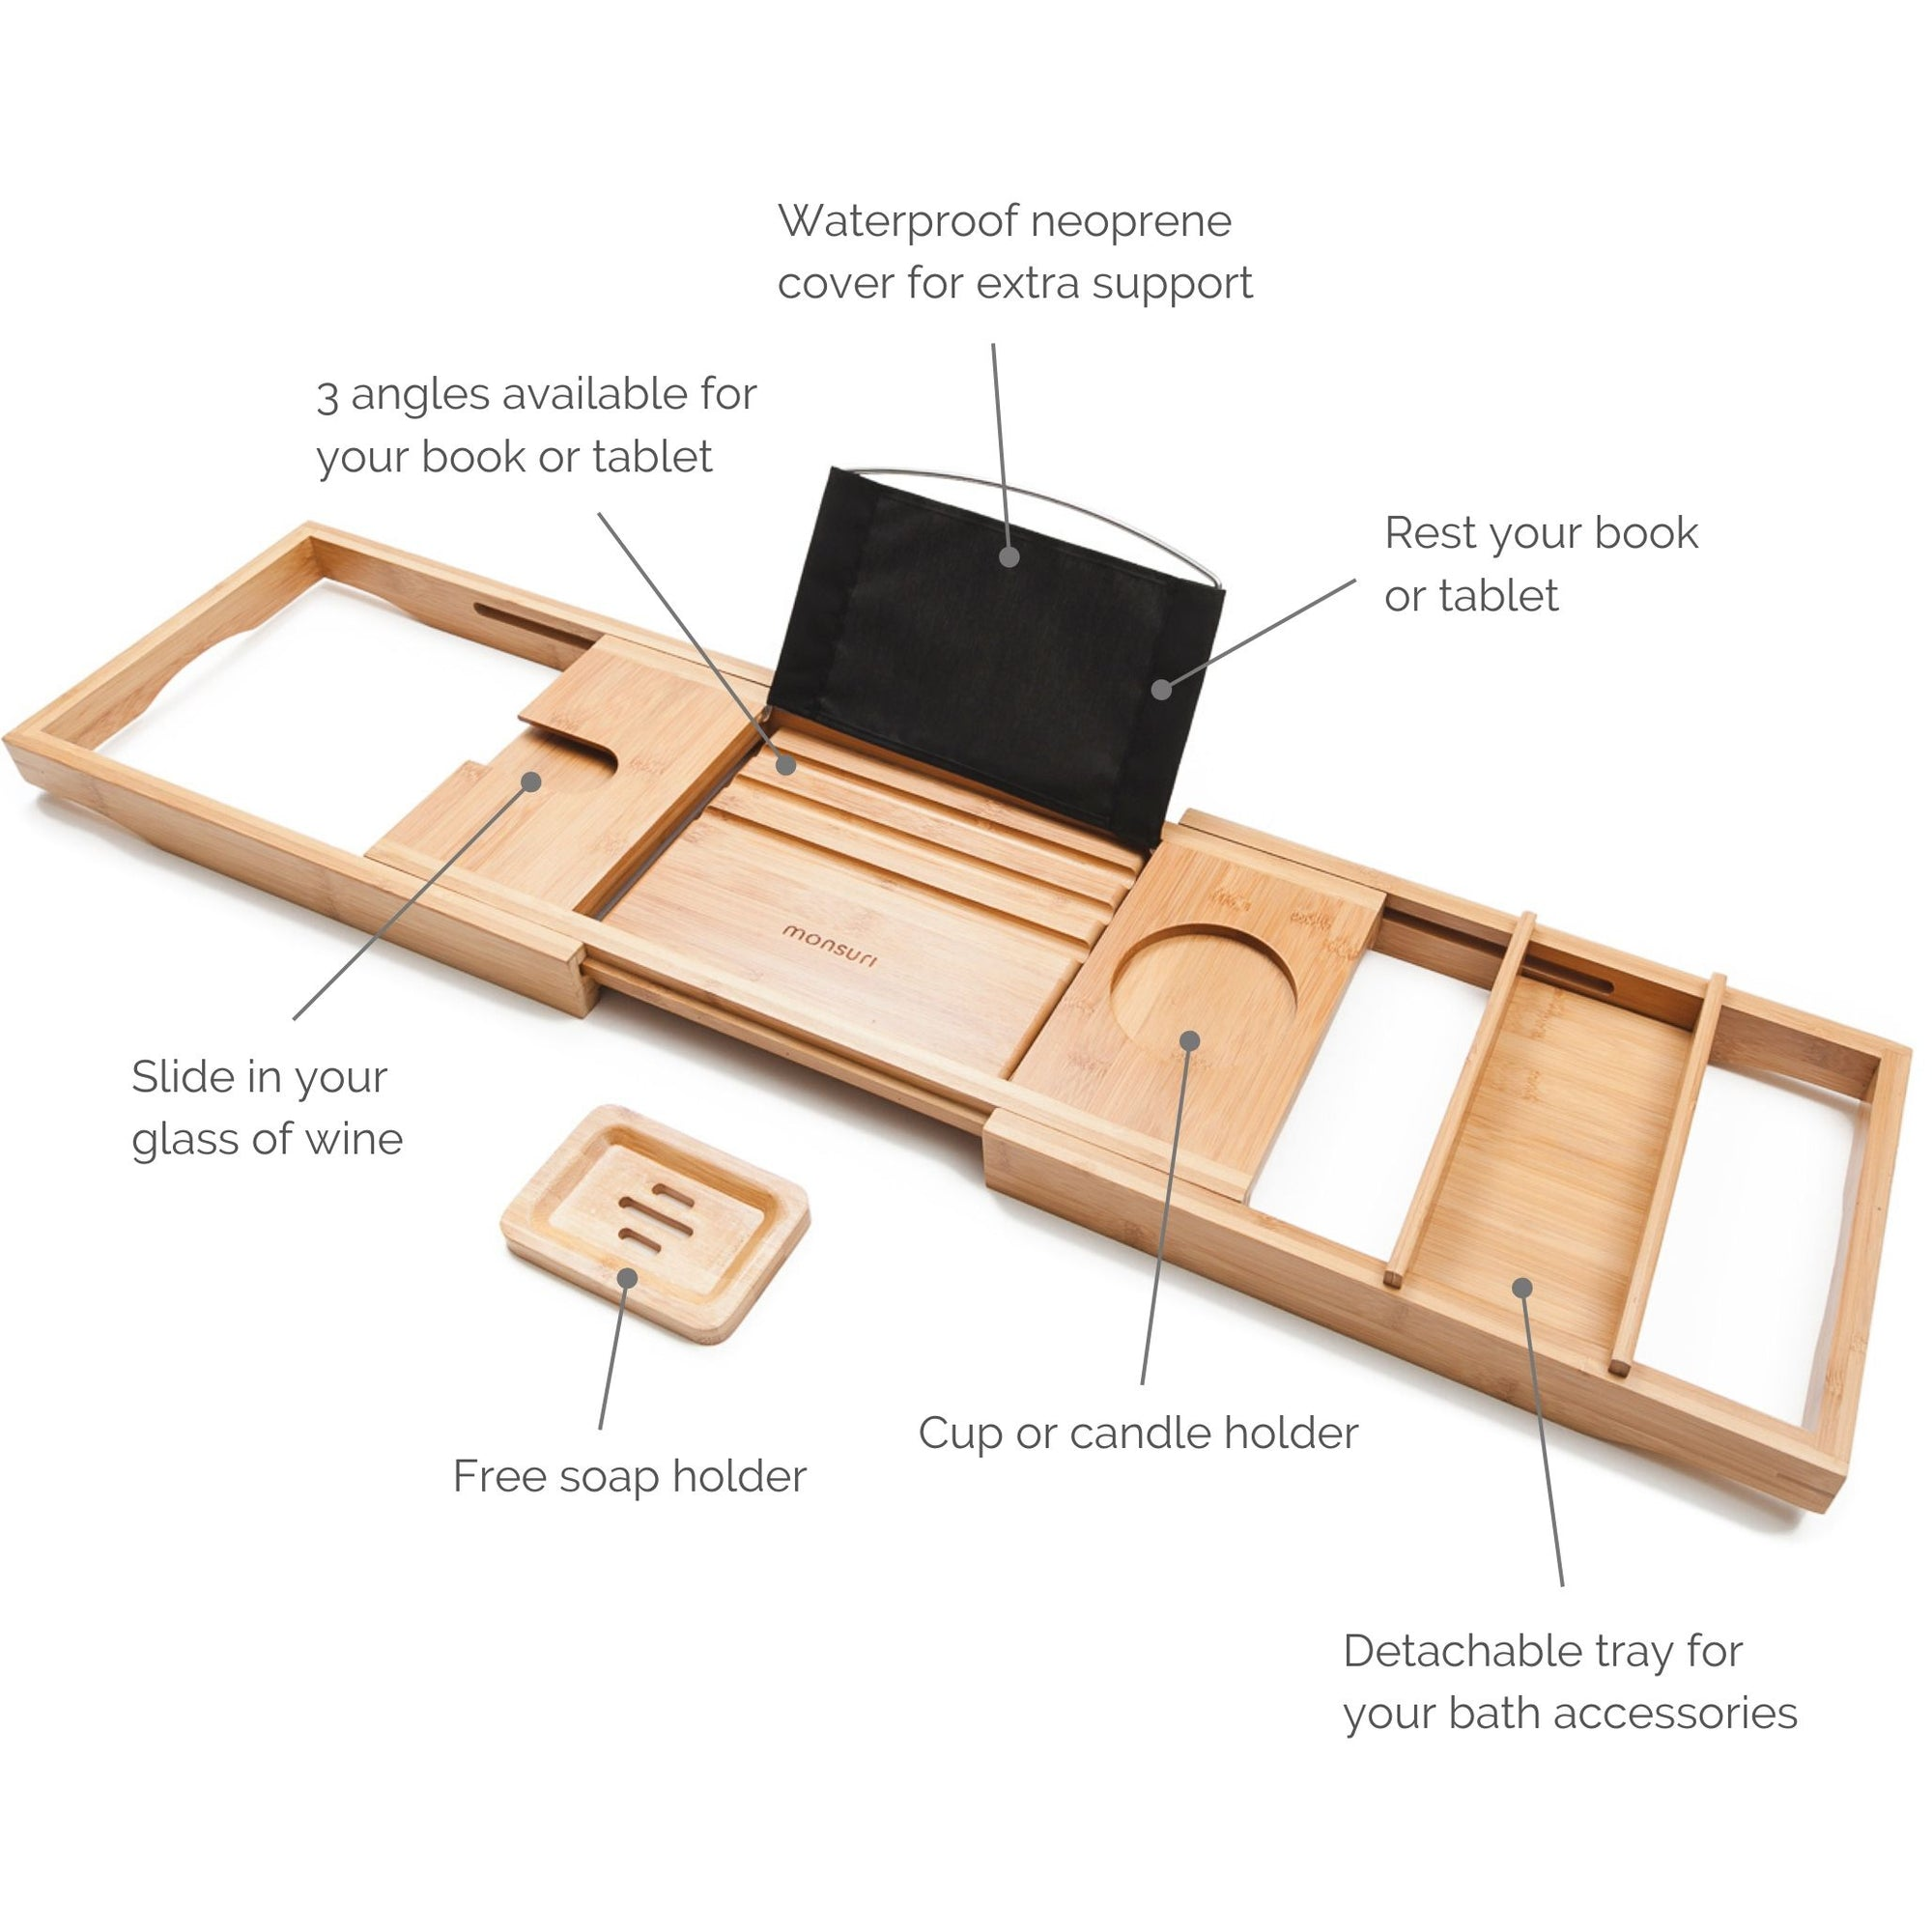 Expandable bamboo bath trays for tub with a book stand, wine glass slot and a bath accessories tray